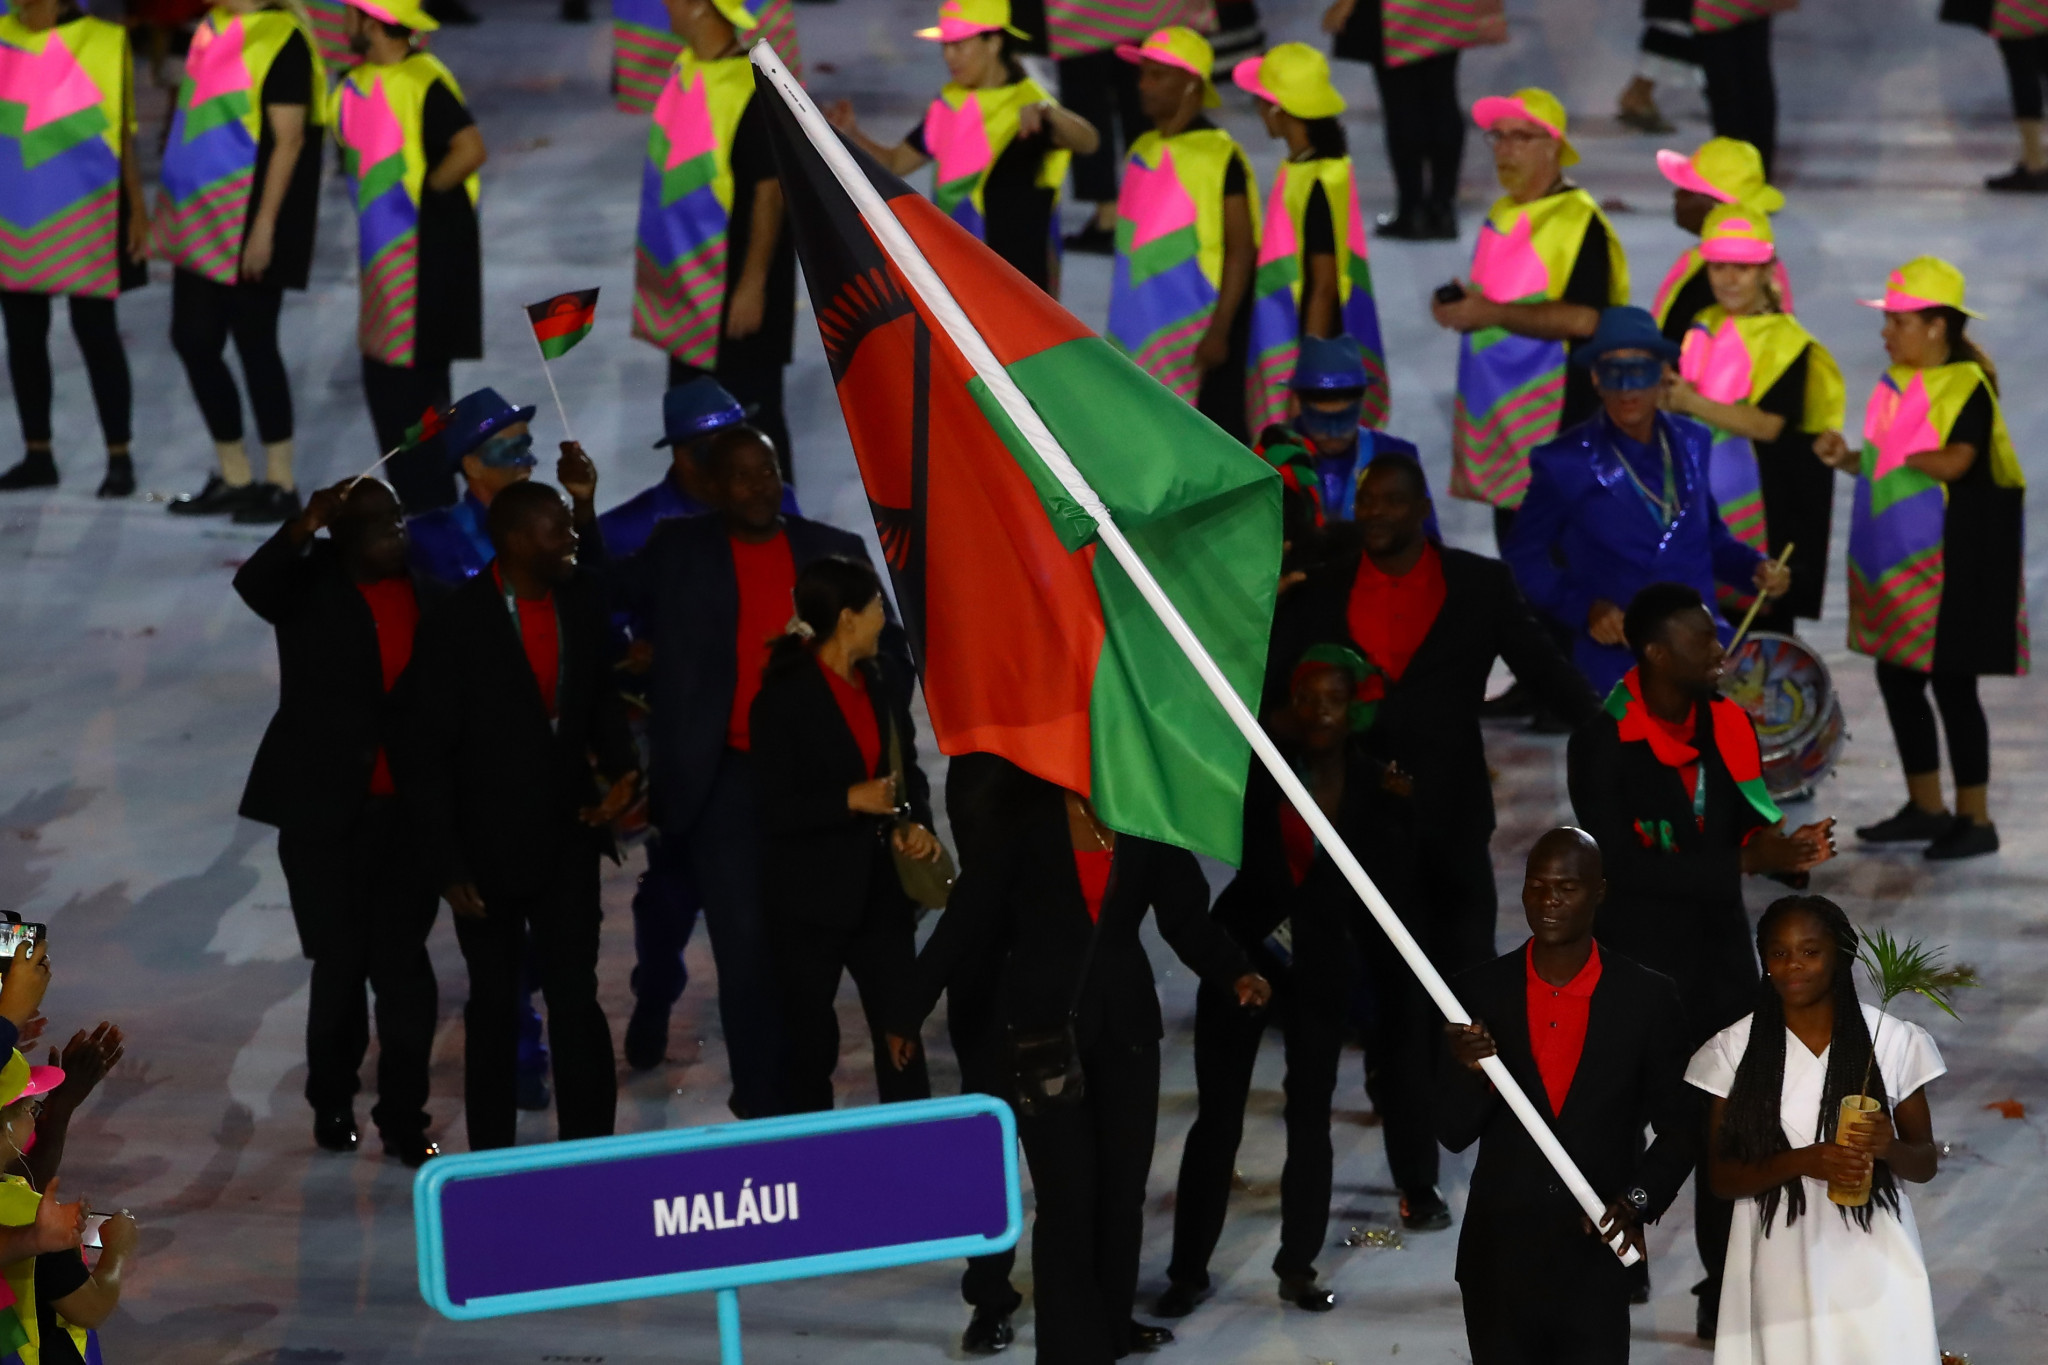 Malawi Olympic Committee to host workshop in strategic planning